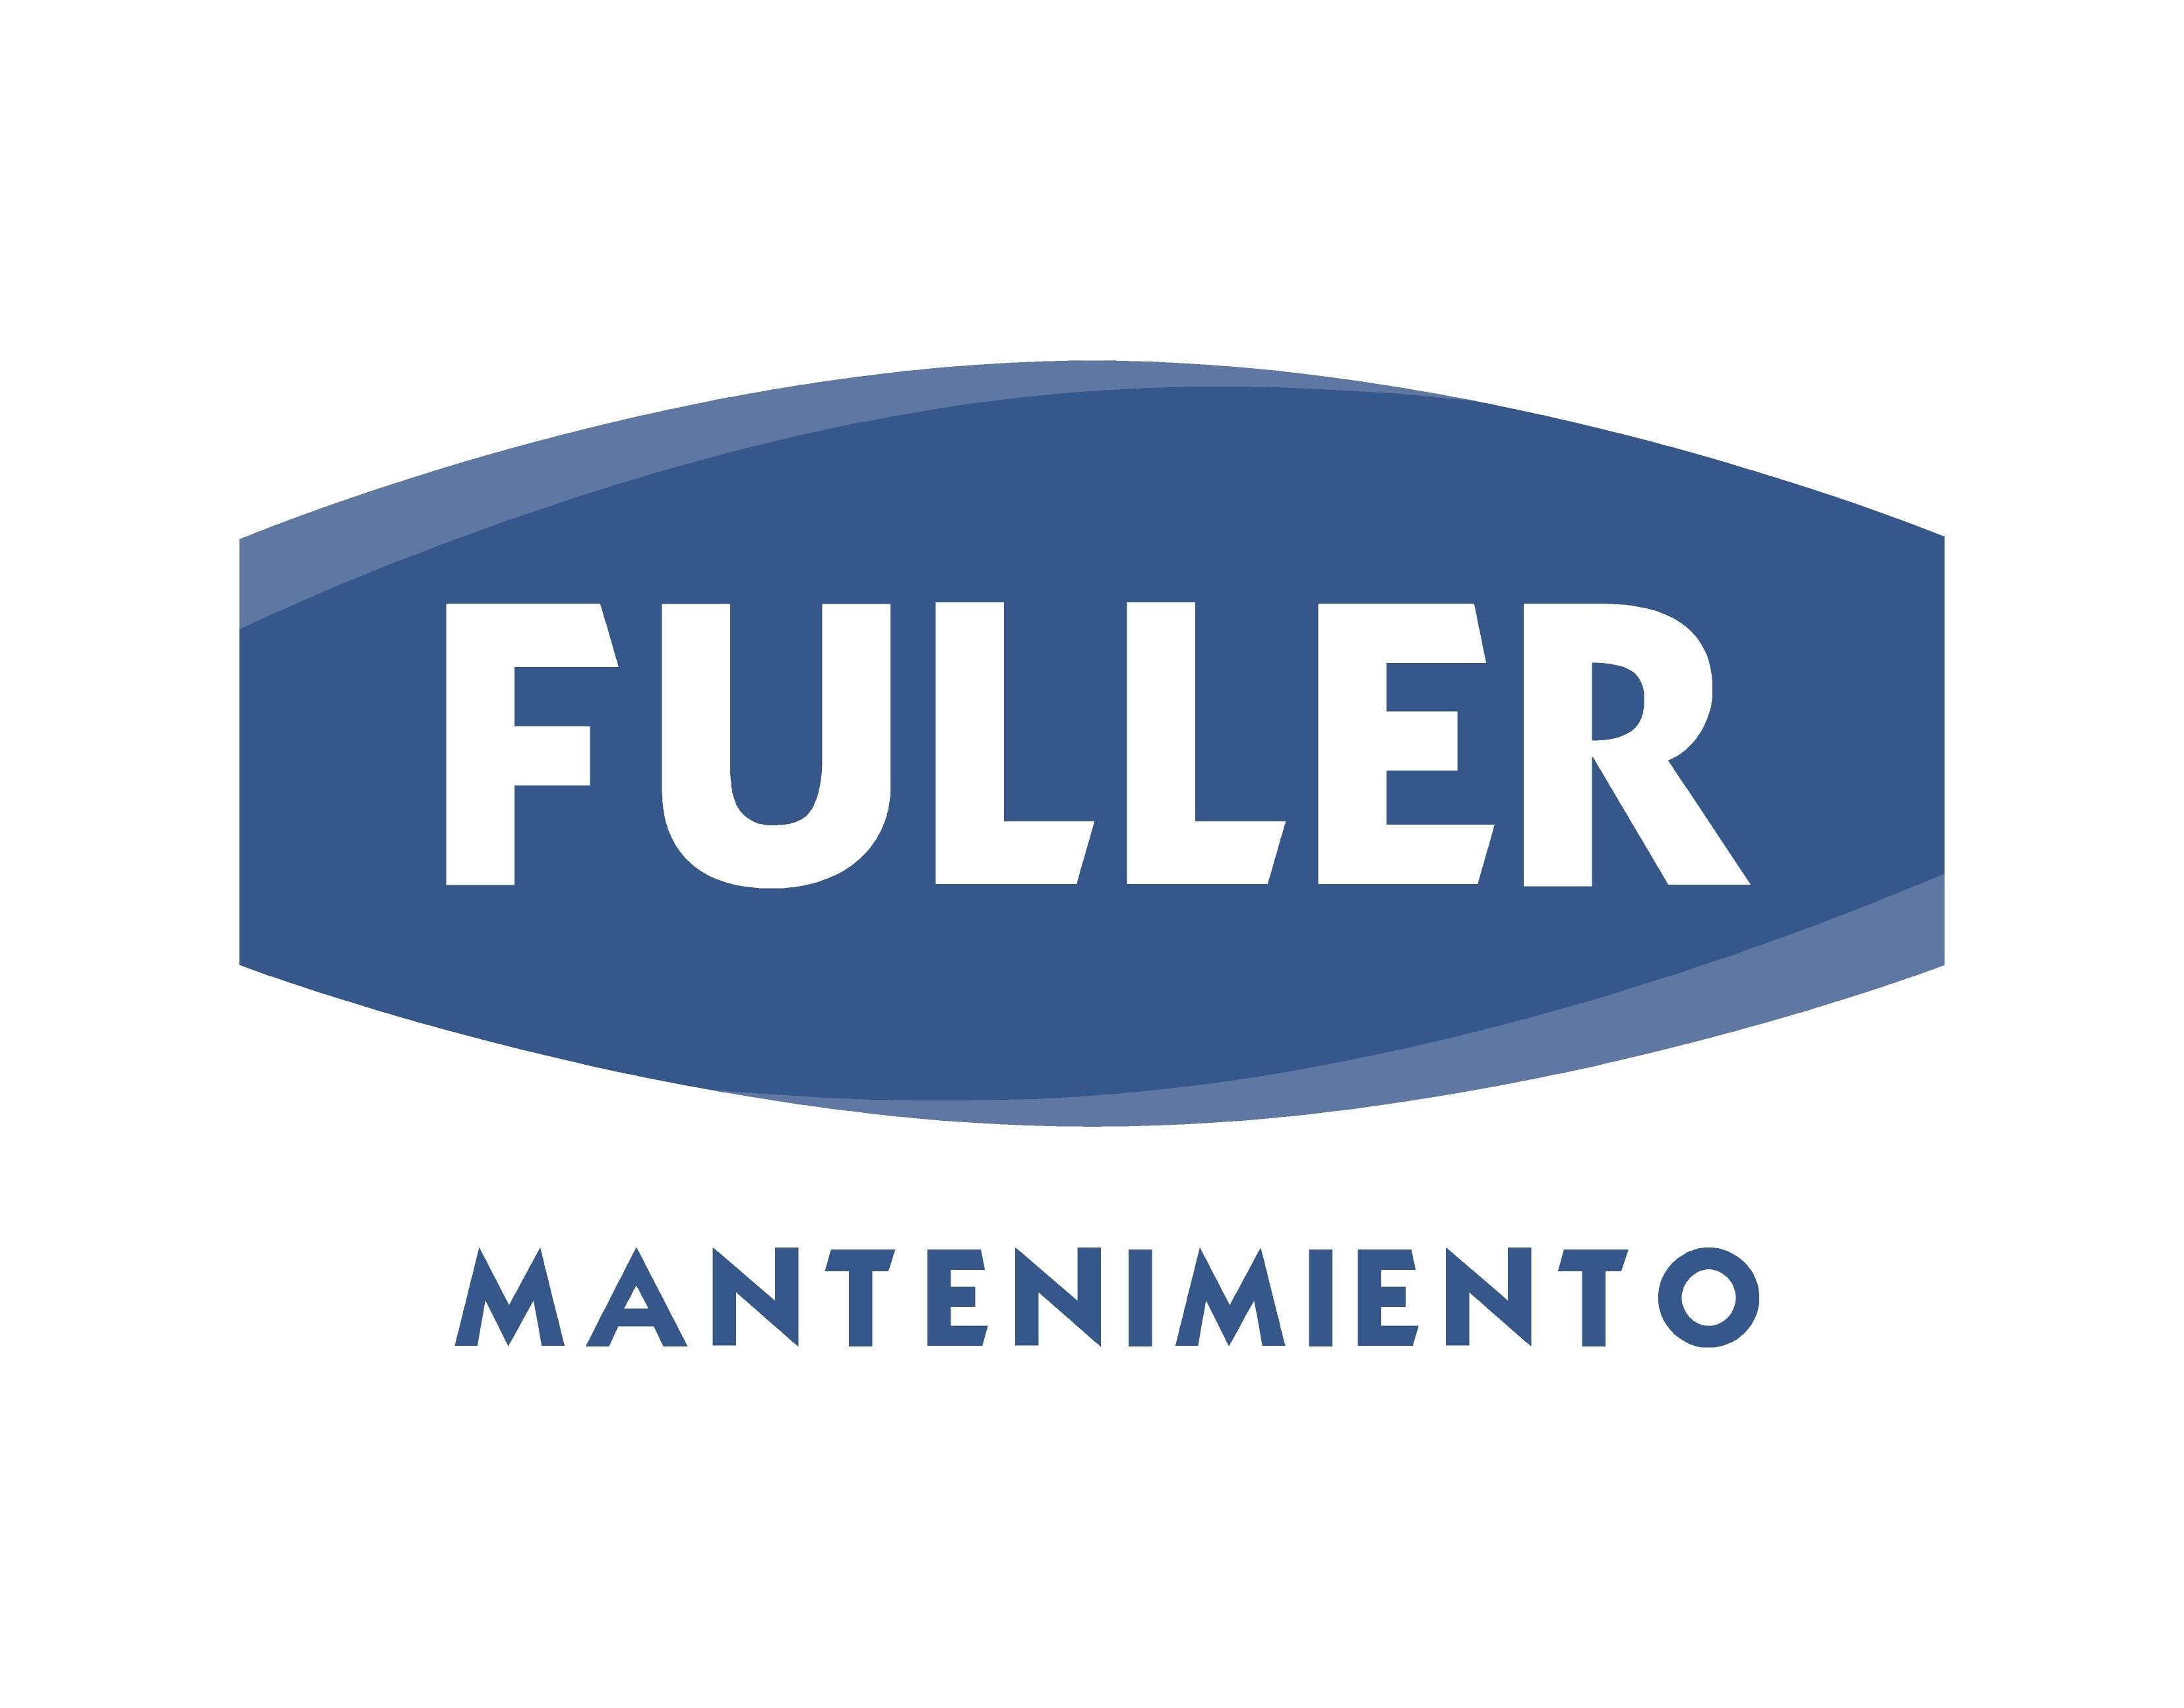 FULLER MANTENIMIENTO S.A